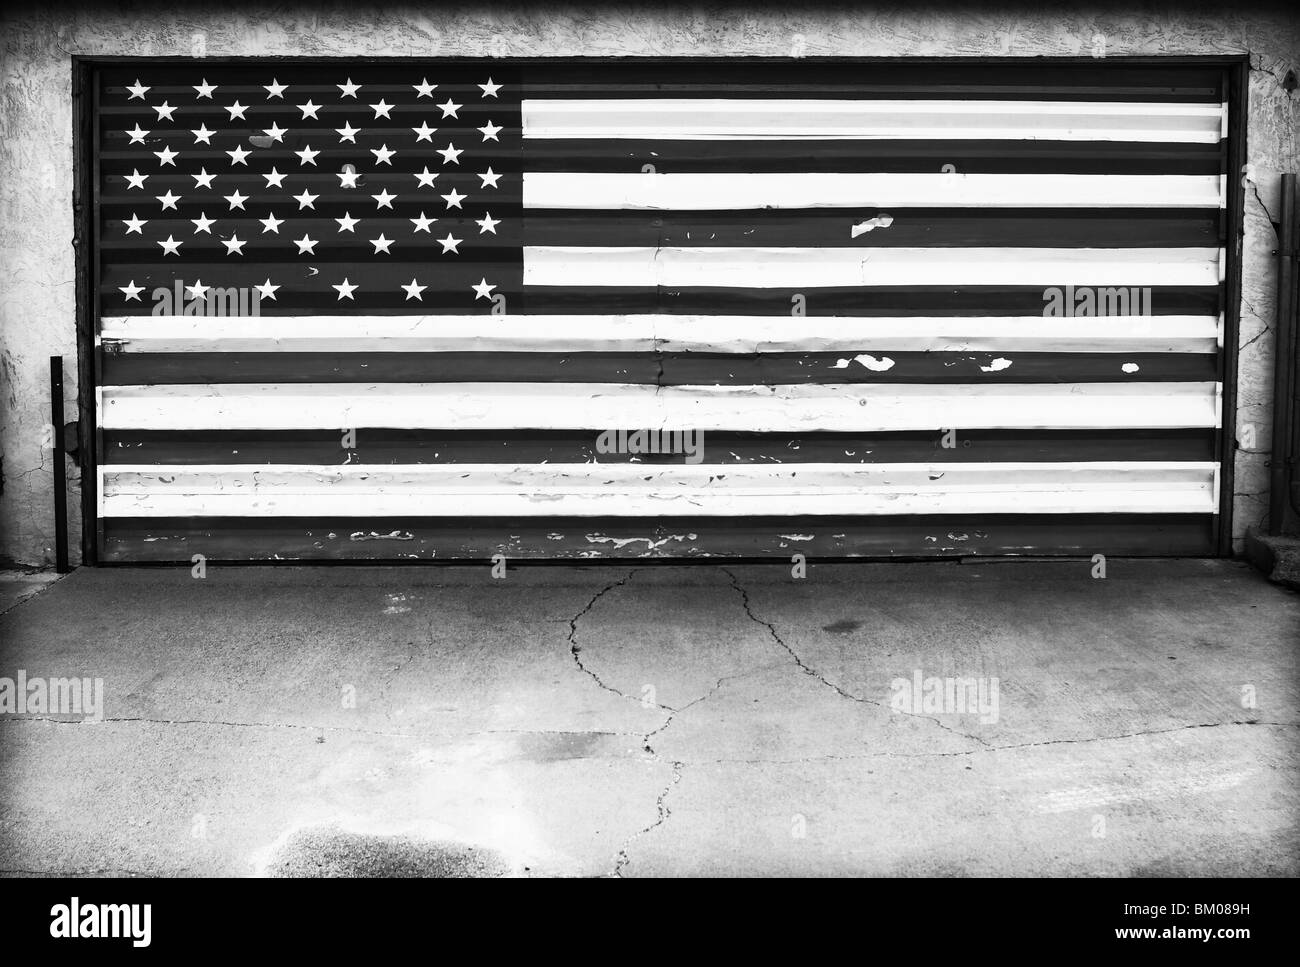 Patriot immagini patriot fotos stock alamy - Porta del garage ...